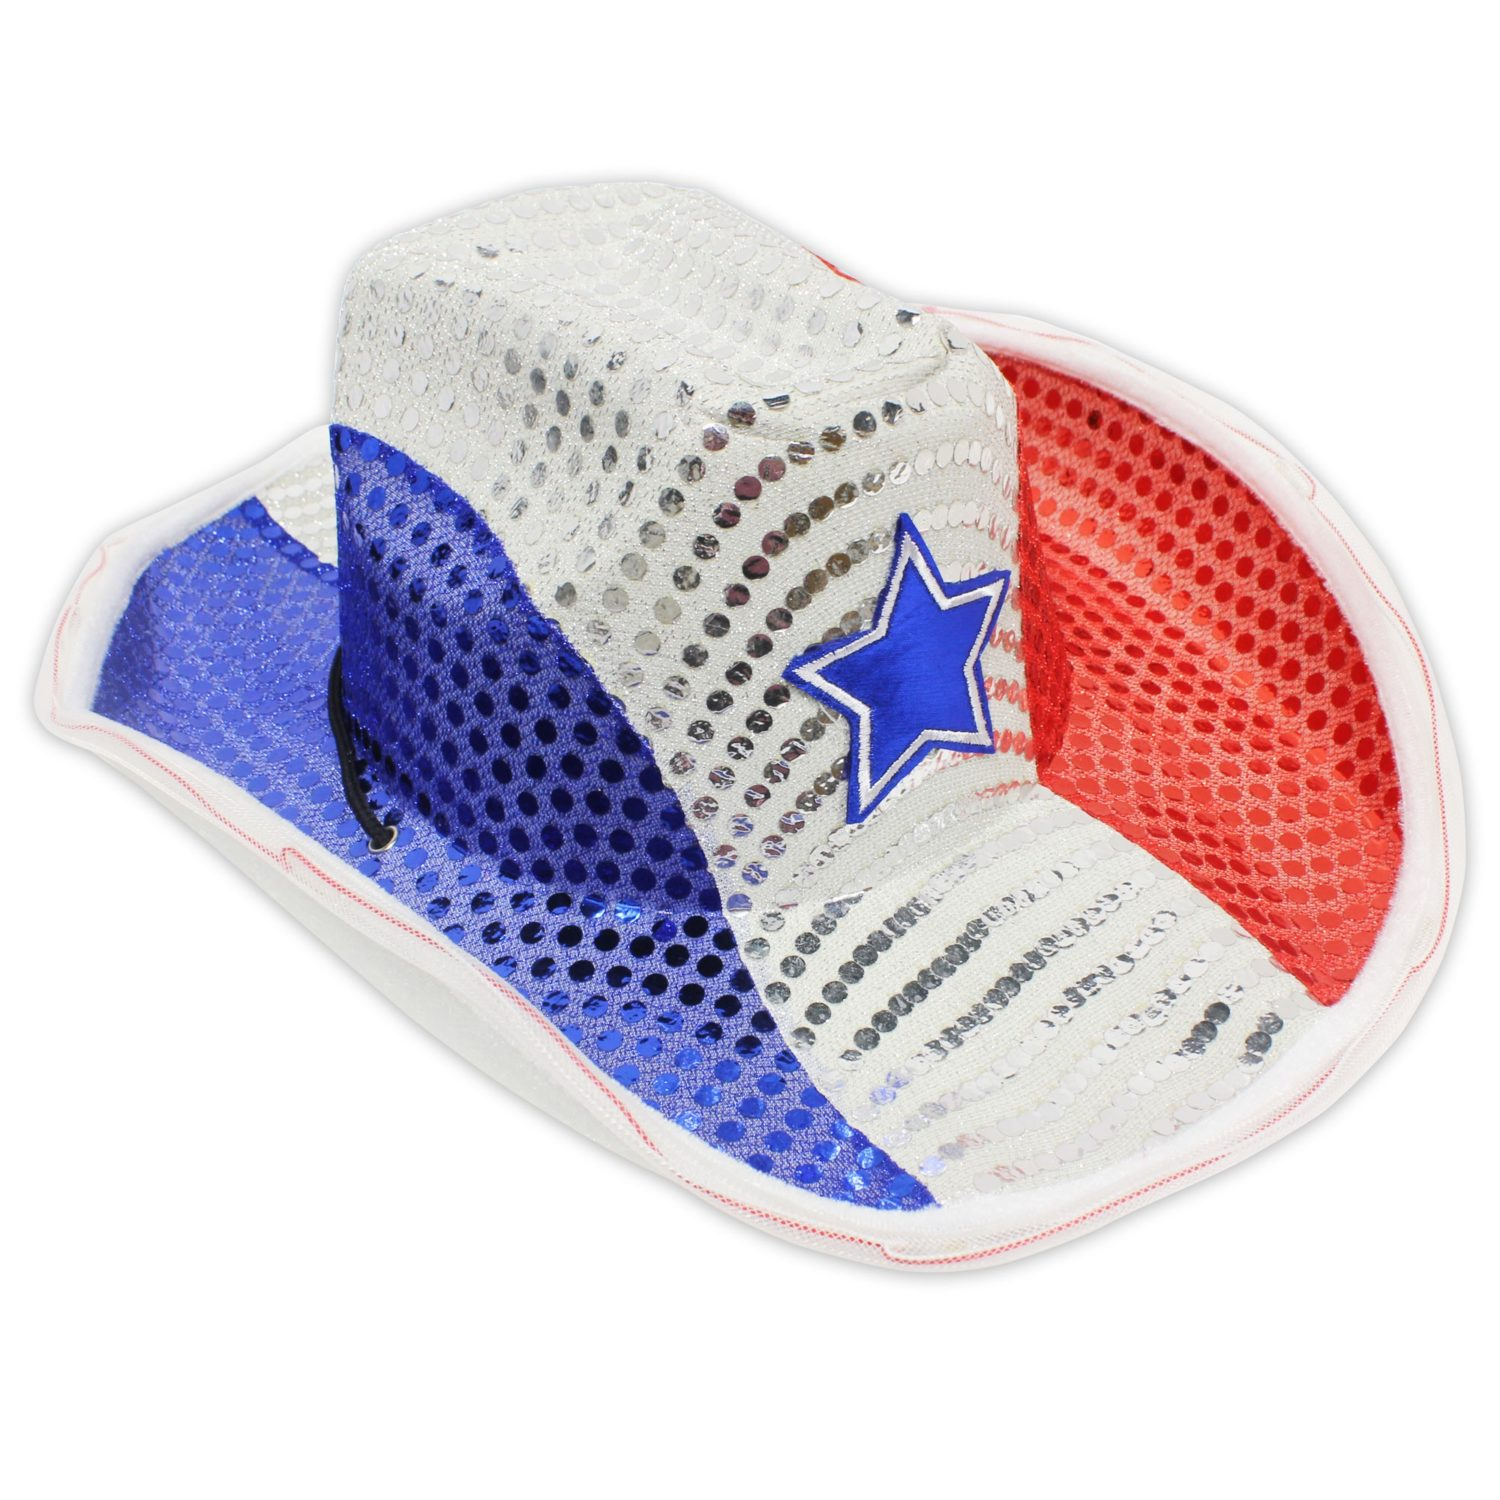 9e2cacc9726 Light Up LED Flashing Cowboy Hat with Red White and Blue Sequins • Magic  Matt s Brilliant Blinkys